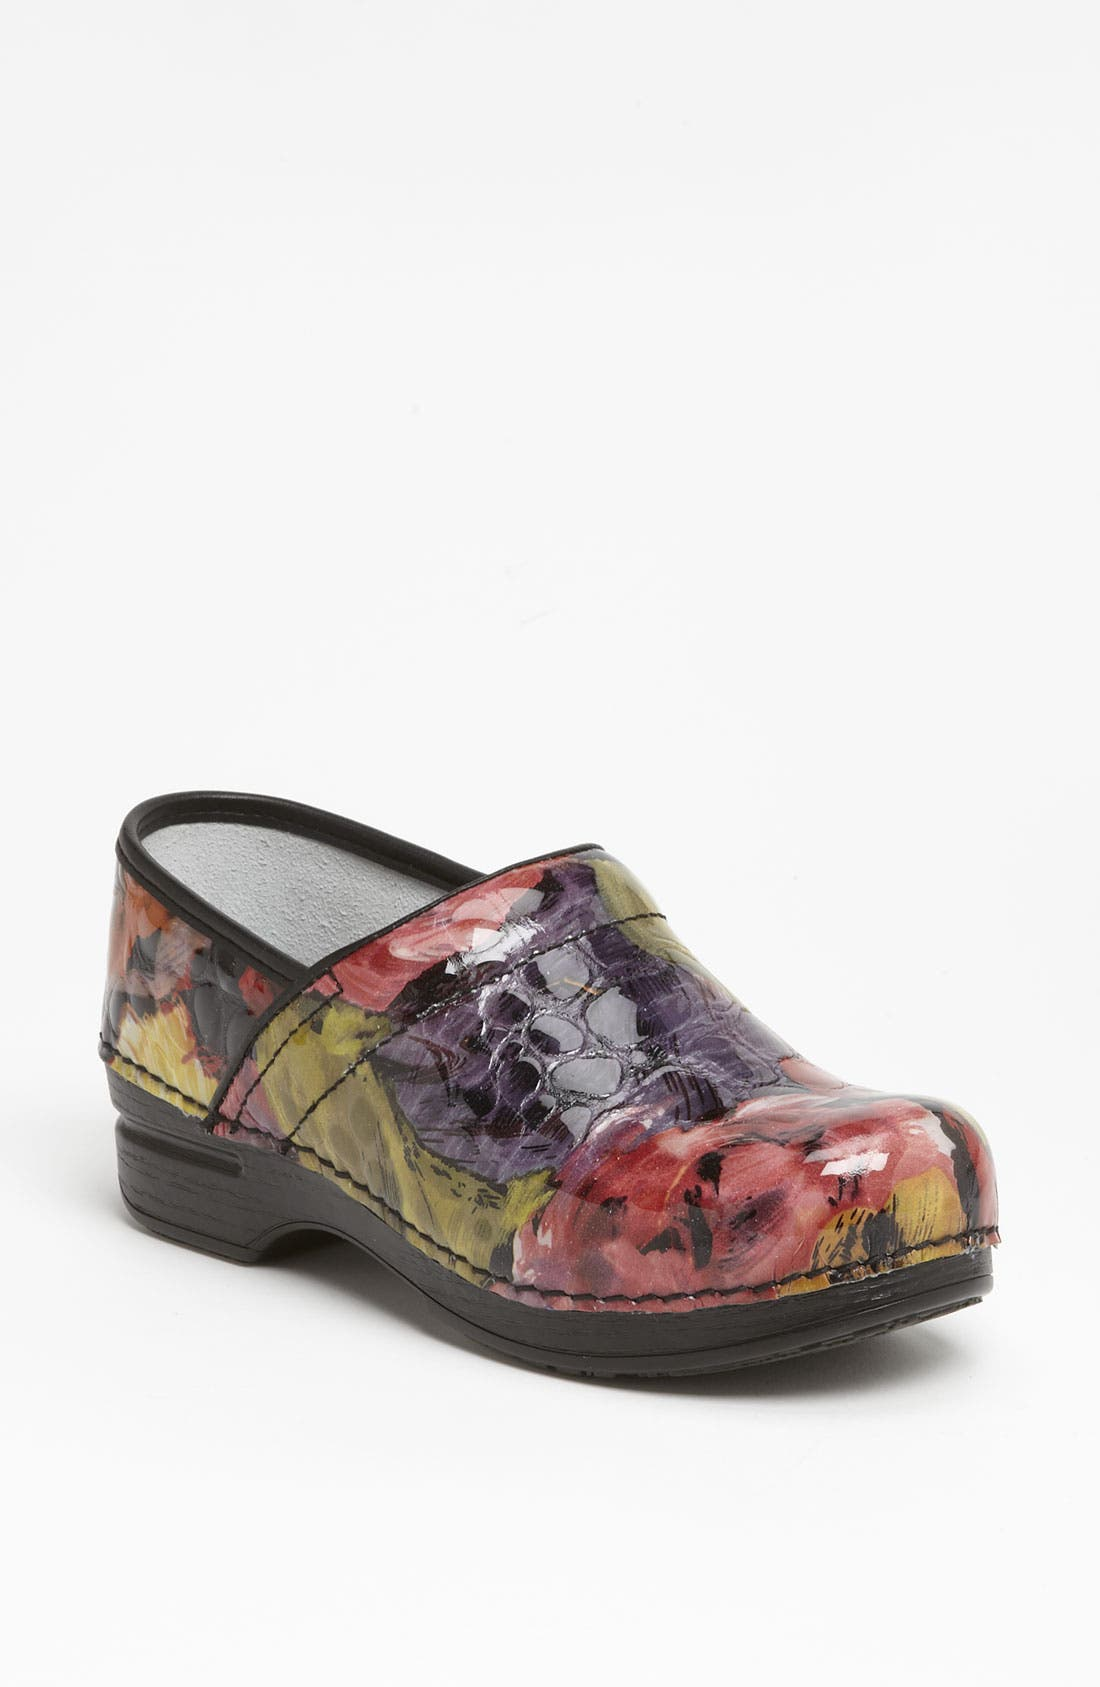 Alternate Image 1 Selected - Dansko 'MTO Professional XP' Clog